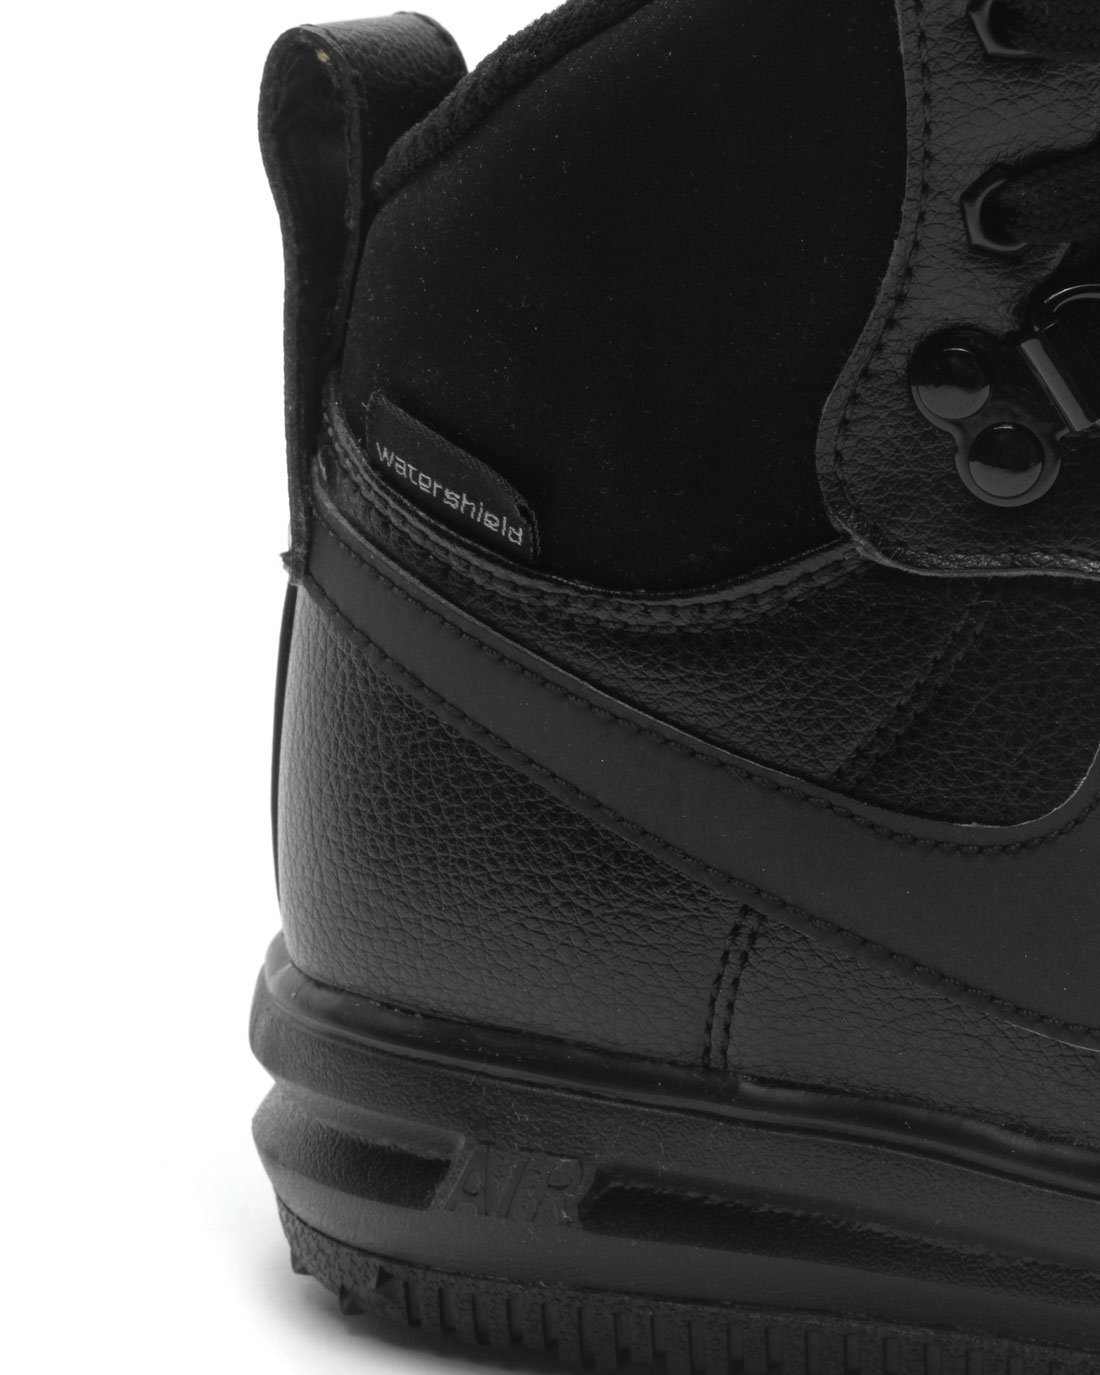 Nike Lunar Force 1 Sneakerboot (GS) Black/Black-Metallic Silver (4.5Y) by Nike (Image #5)